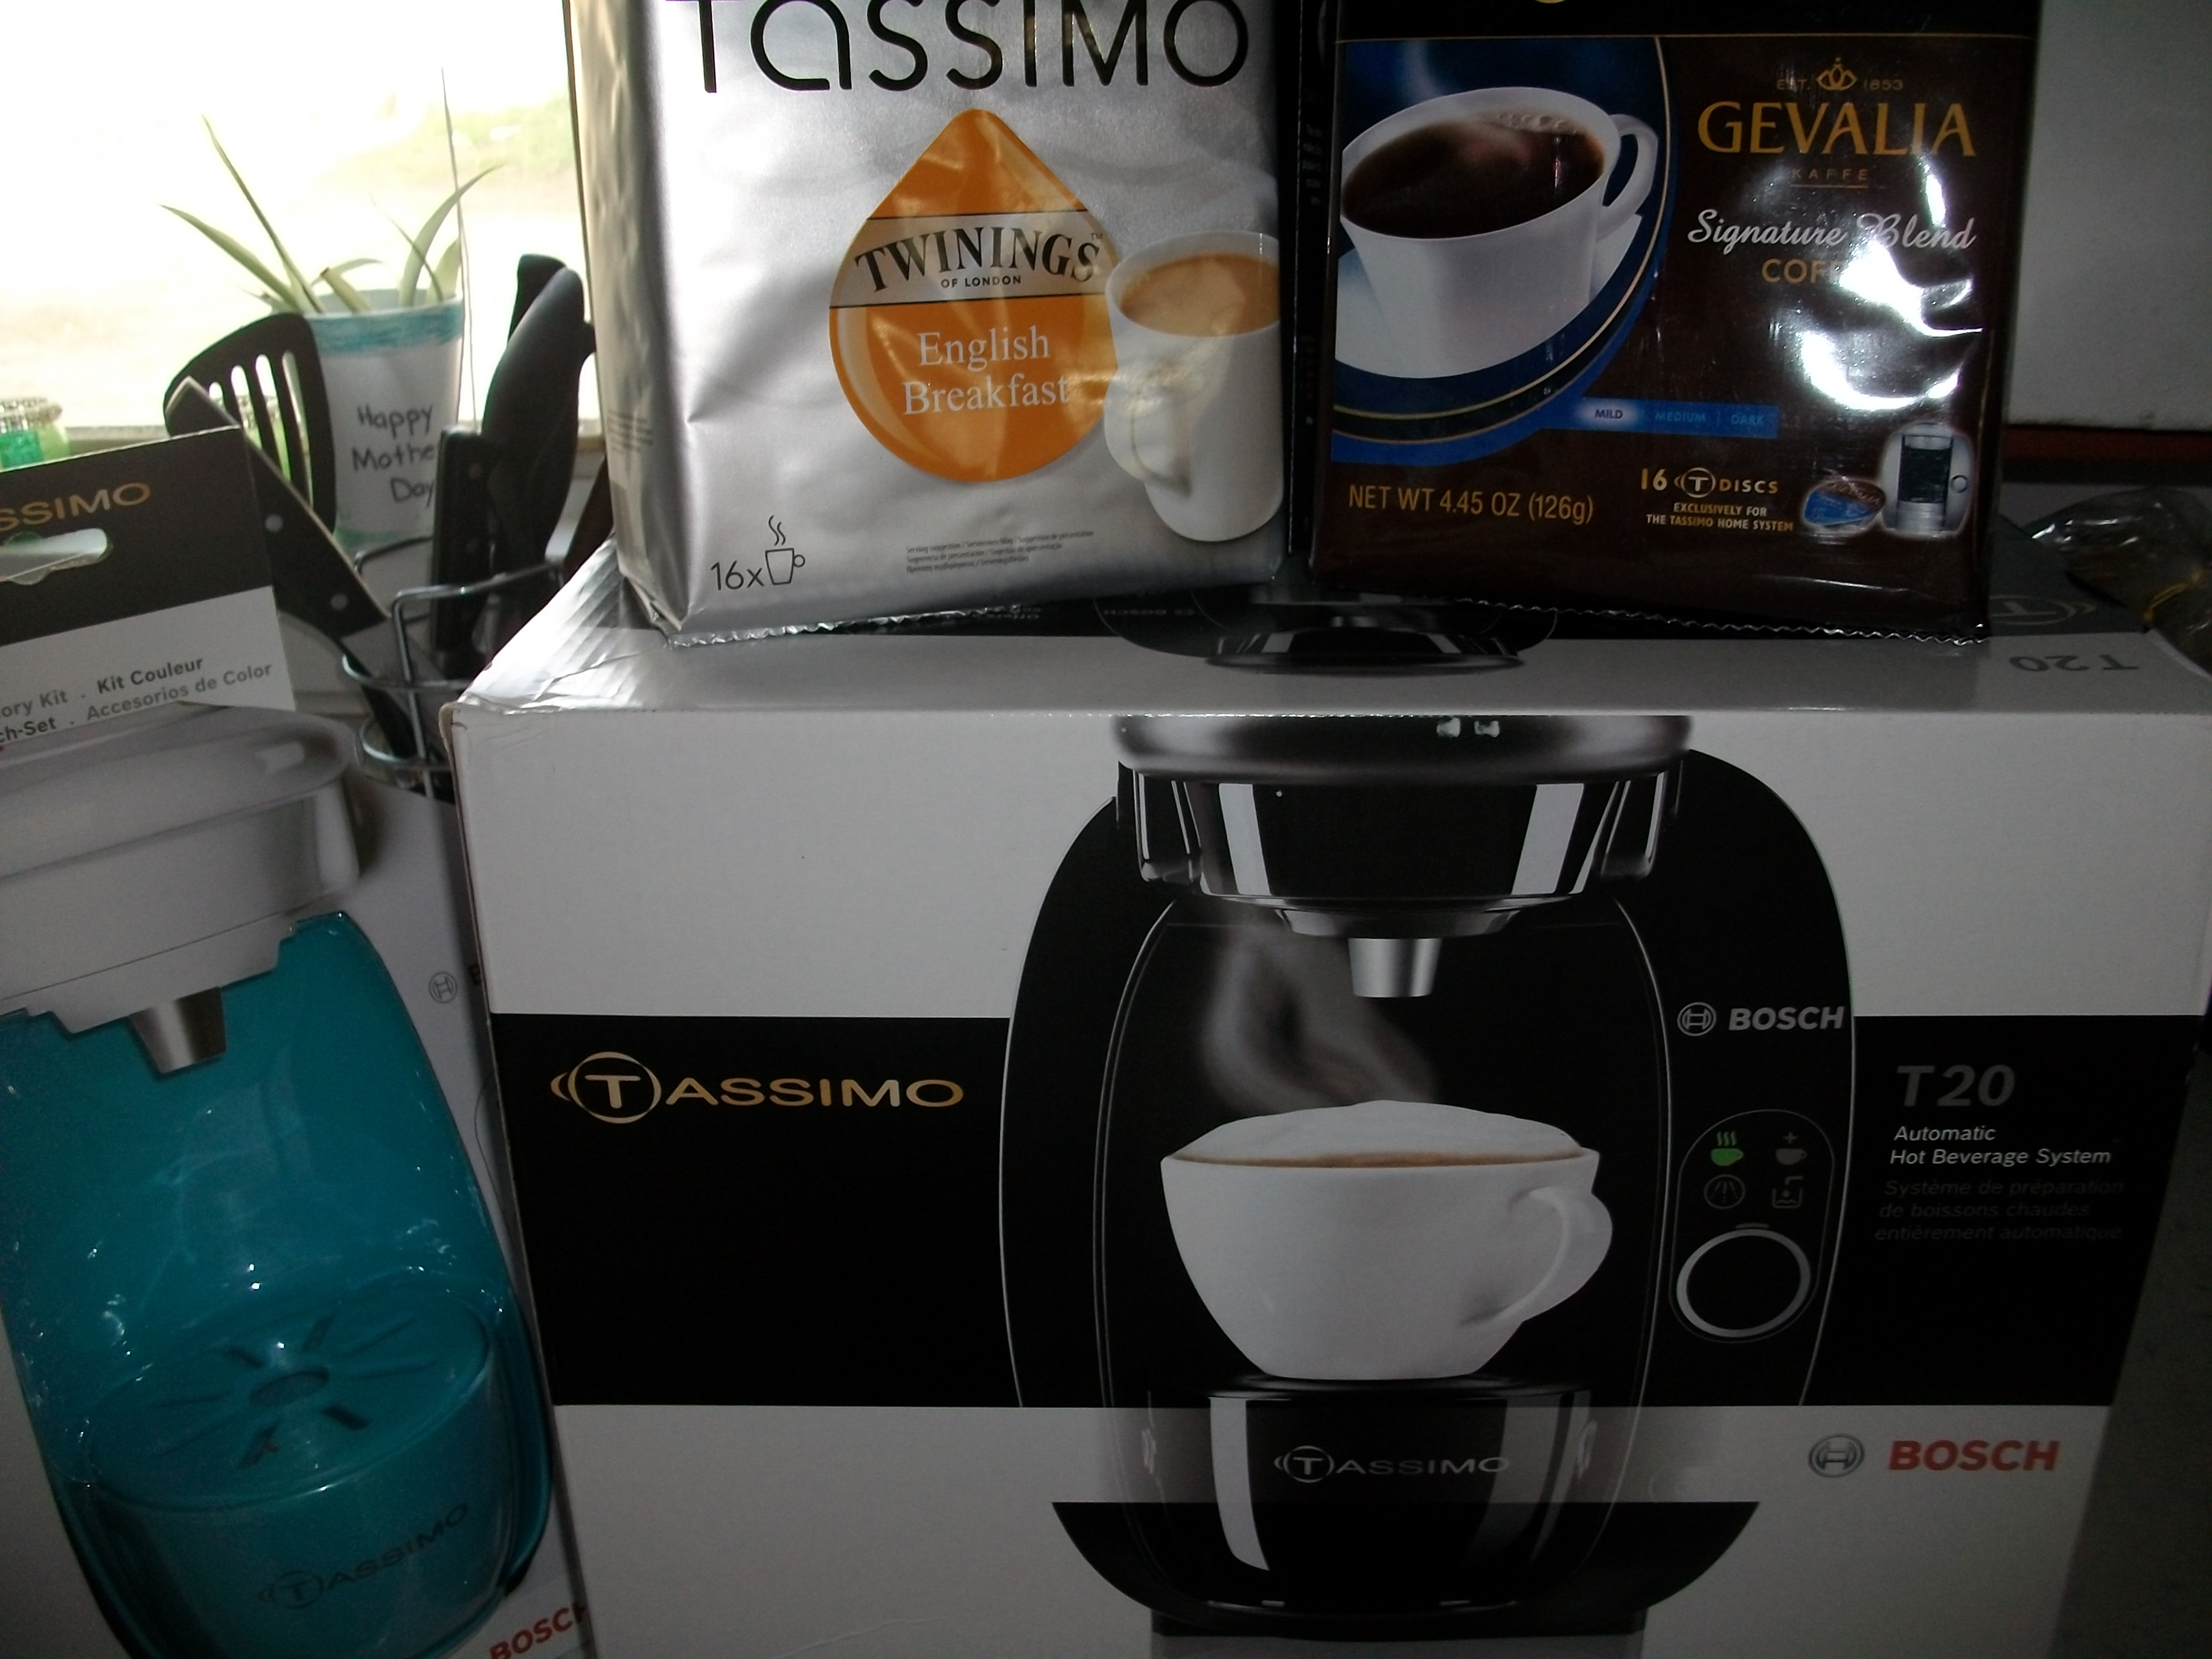 Tassimo for the Holidays! T20 Brewing System Prize Package Giveaway #12DaysGalore